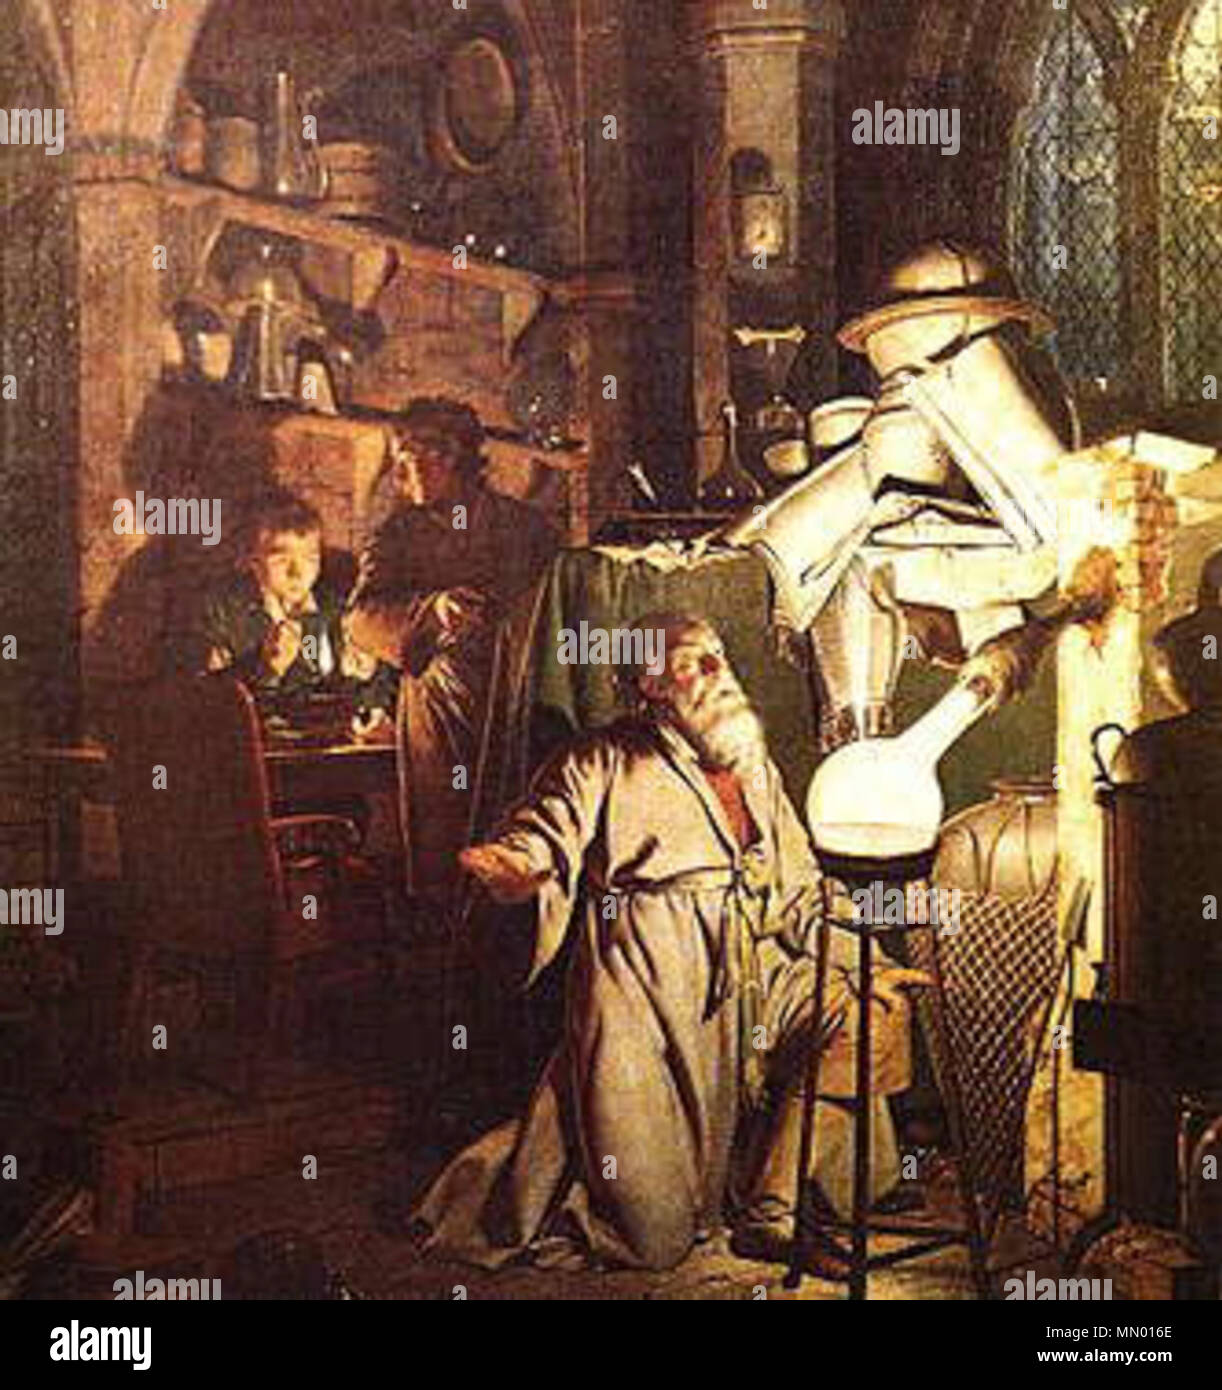 the painting illustrates the discovery of phosphorus by Hennig Brand in 1669.  The Alchemist in Search of the Philosopher's Stone. 1771.